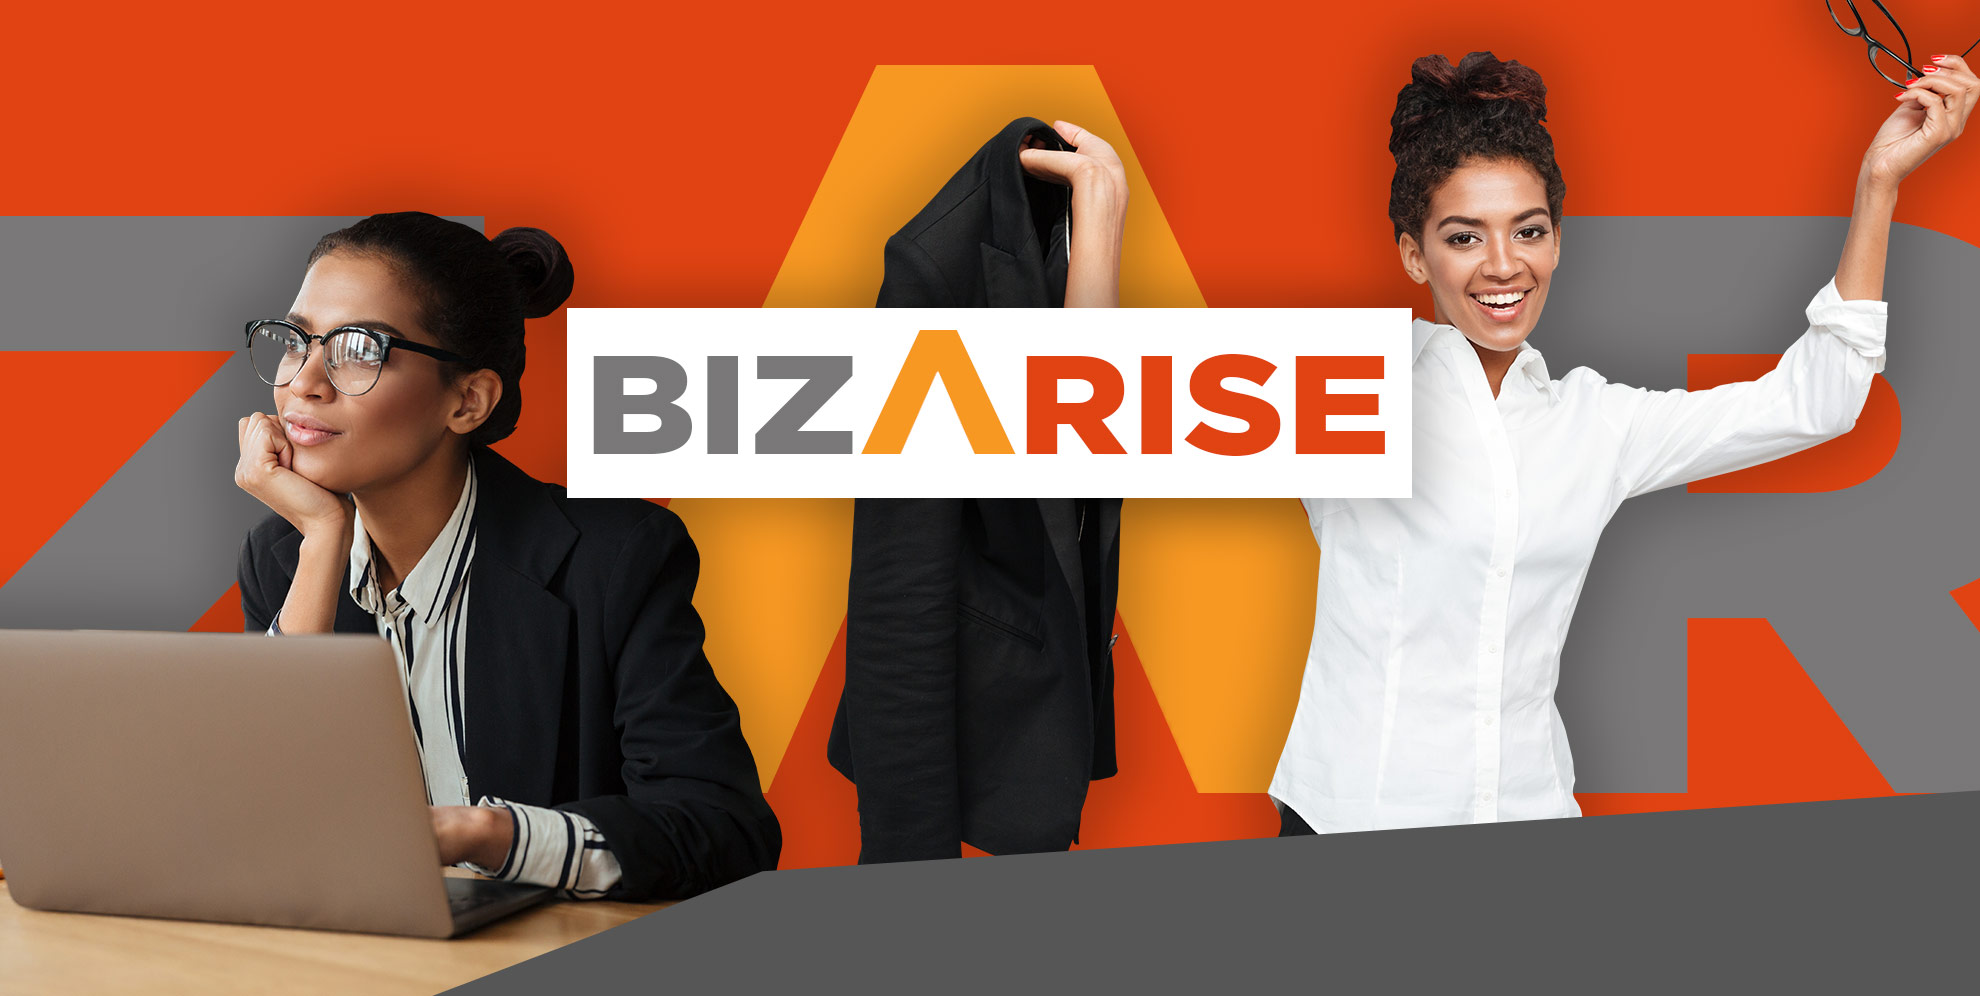 BizOil Institute BizArise Startup Program 2020 Website Slider Banner